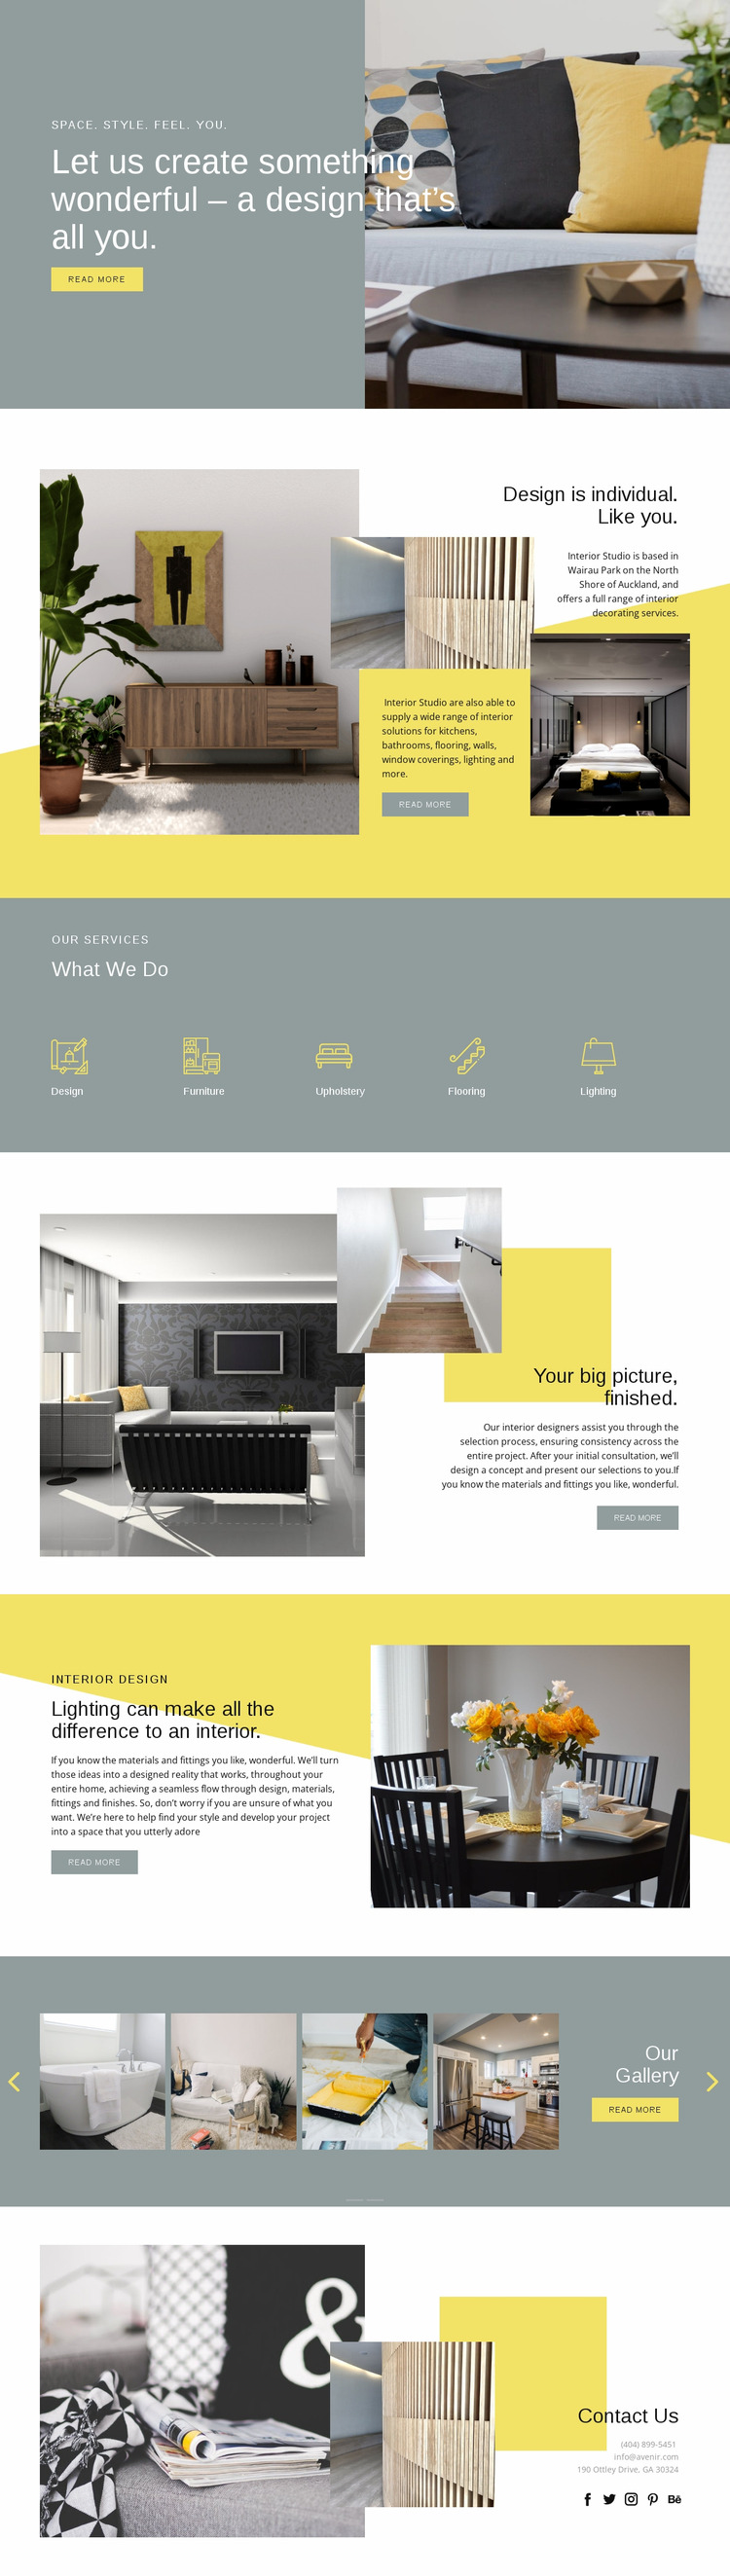 Design is your everything Html Website Builder